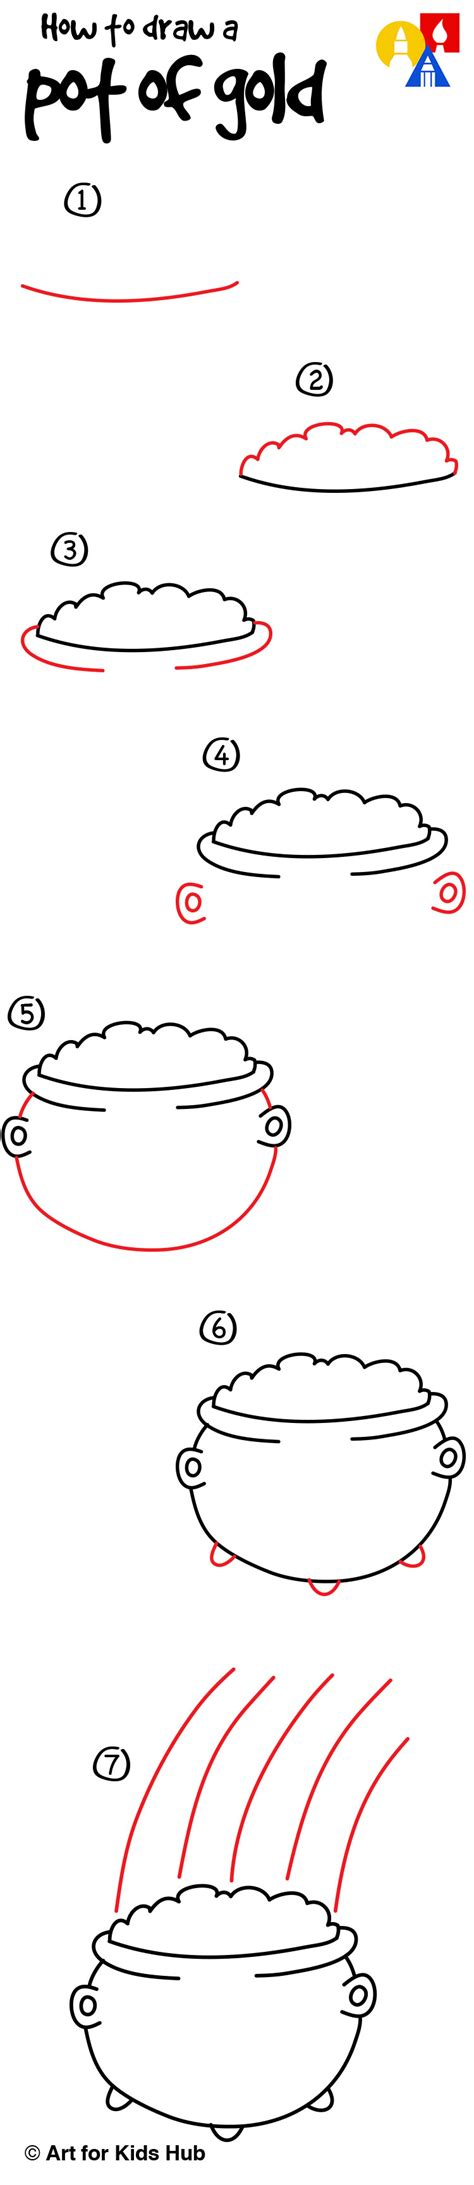 how to draw a pot of gold for hub